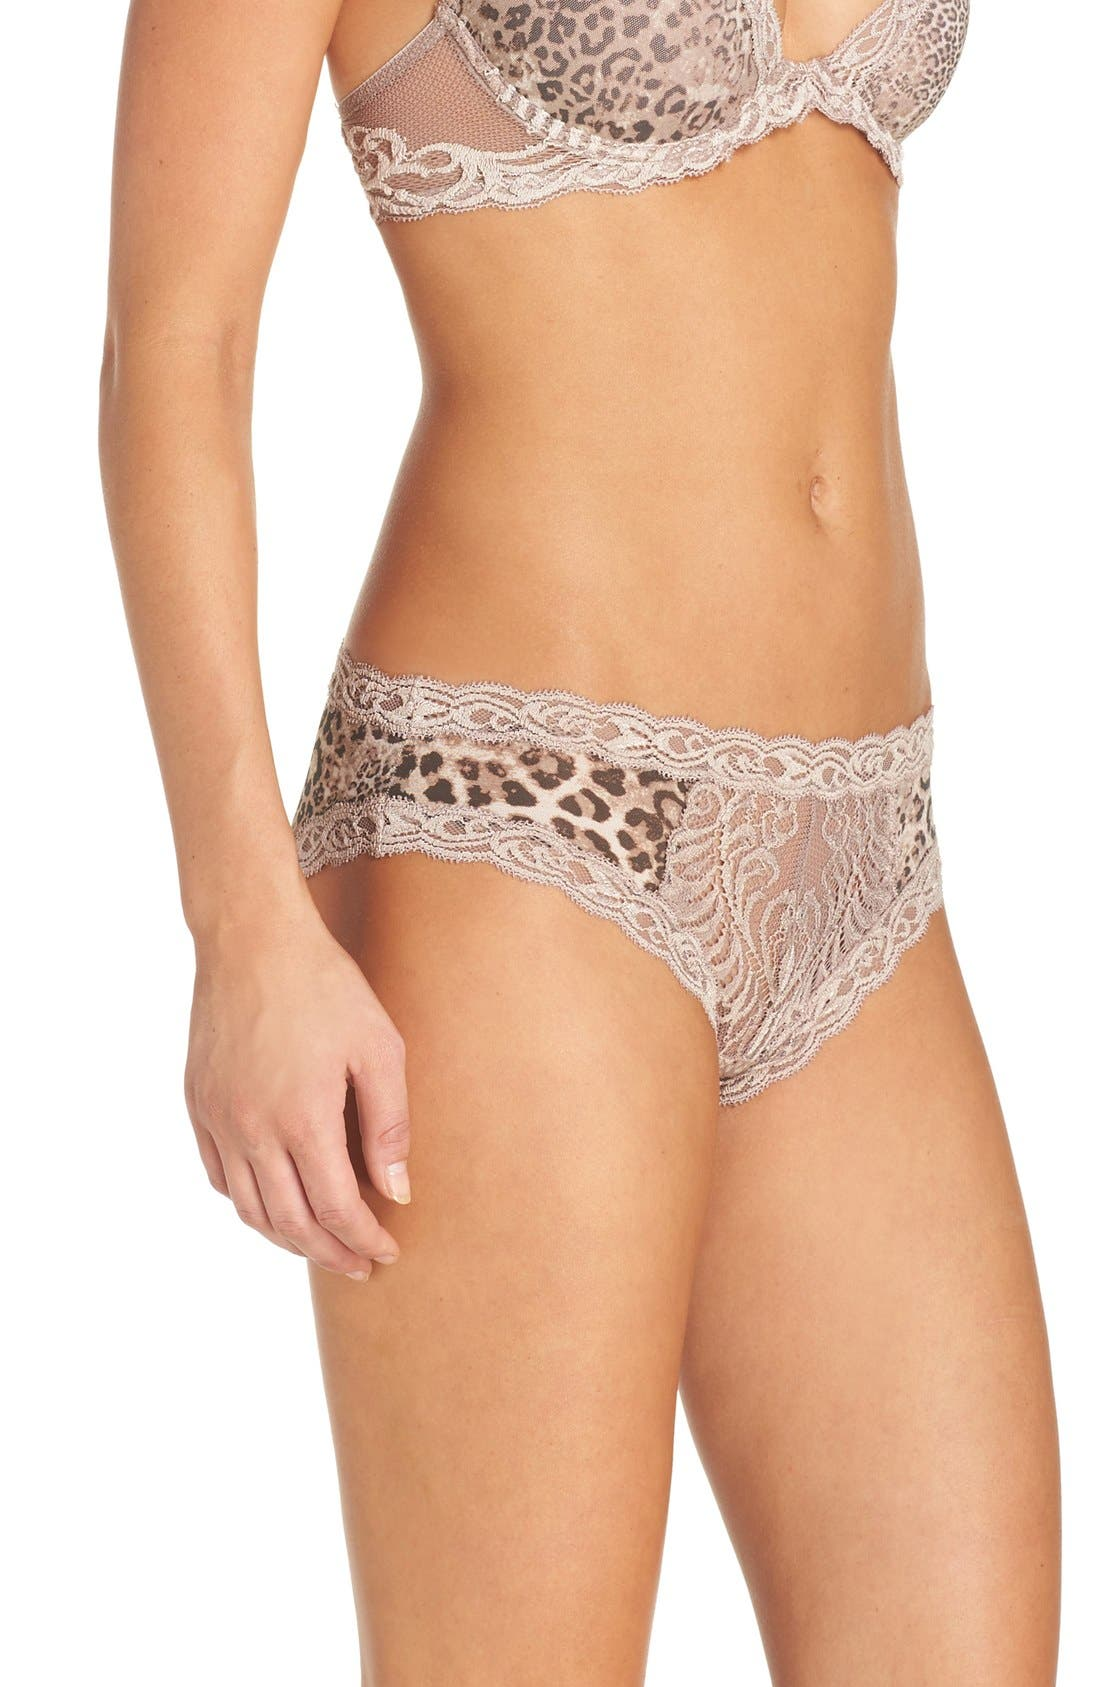 Feathers Hipster Briefs,                             Alternate thumbnail 201, color,